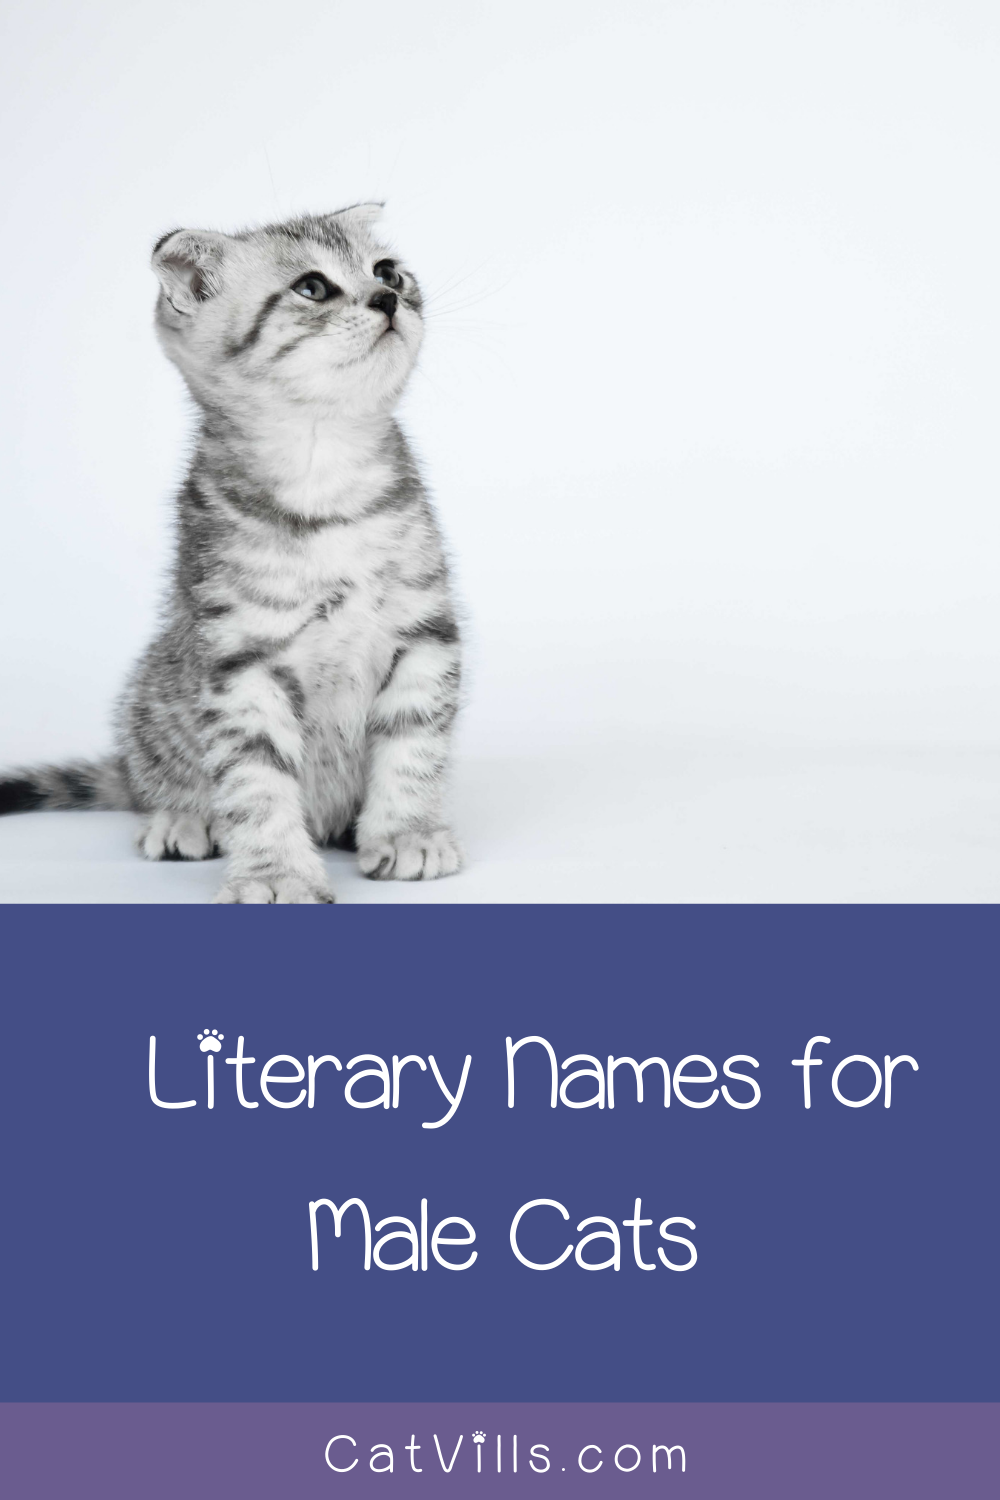 These Are The Top 42 Most Popular Kitten Names Catvills In 2020 Kitten Names Girl Cat Names Kitten Names Boy